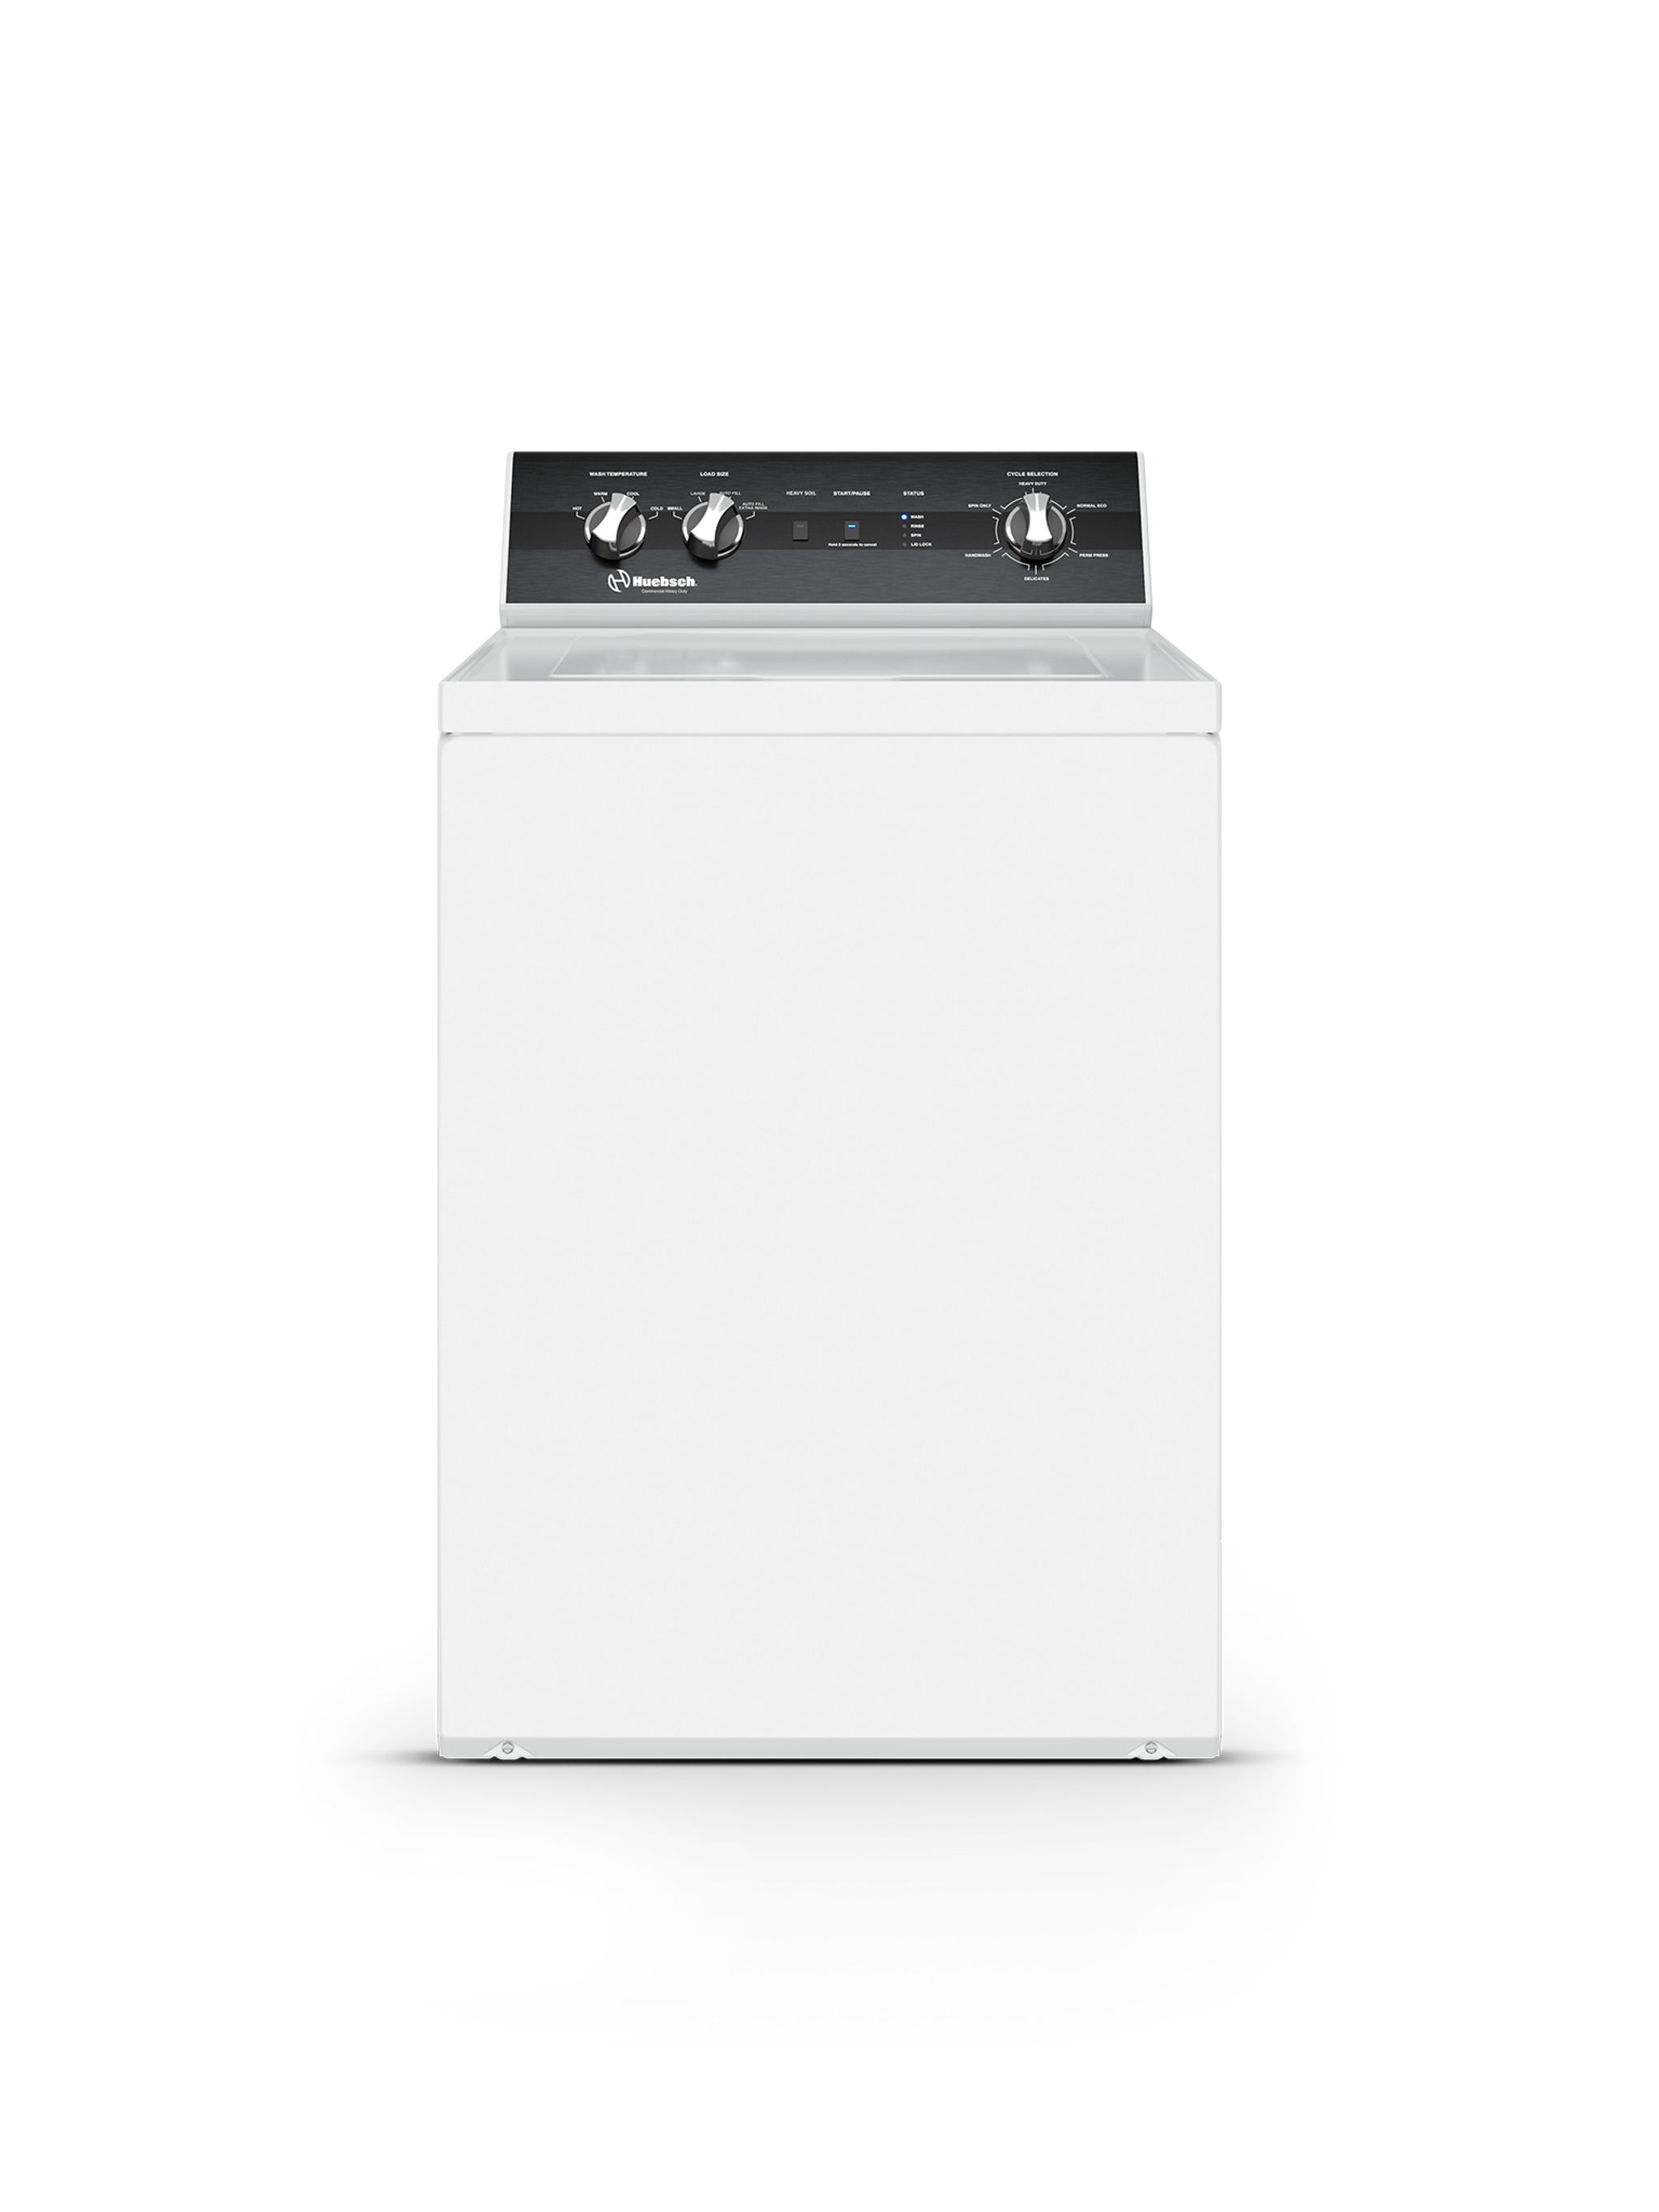 Huebsch Washer 26inch in White color showcased by Corbeil Electro Store